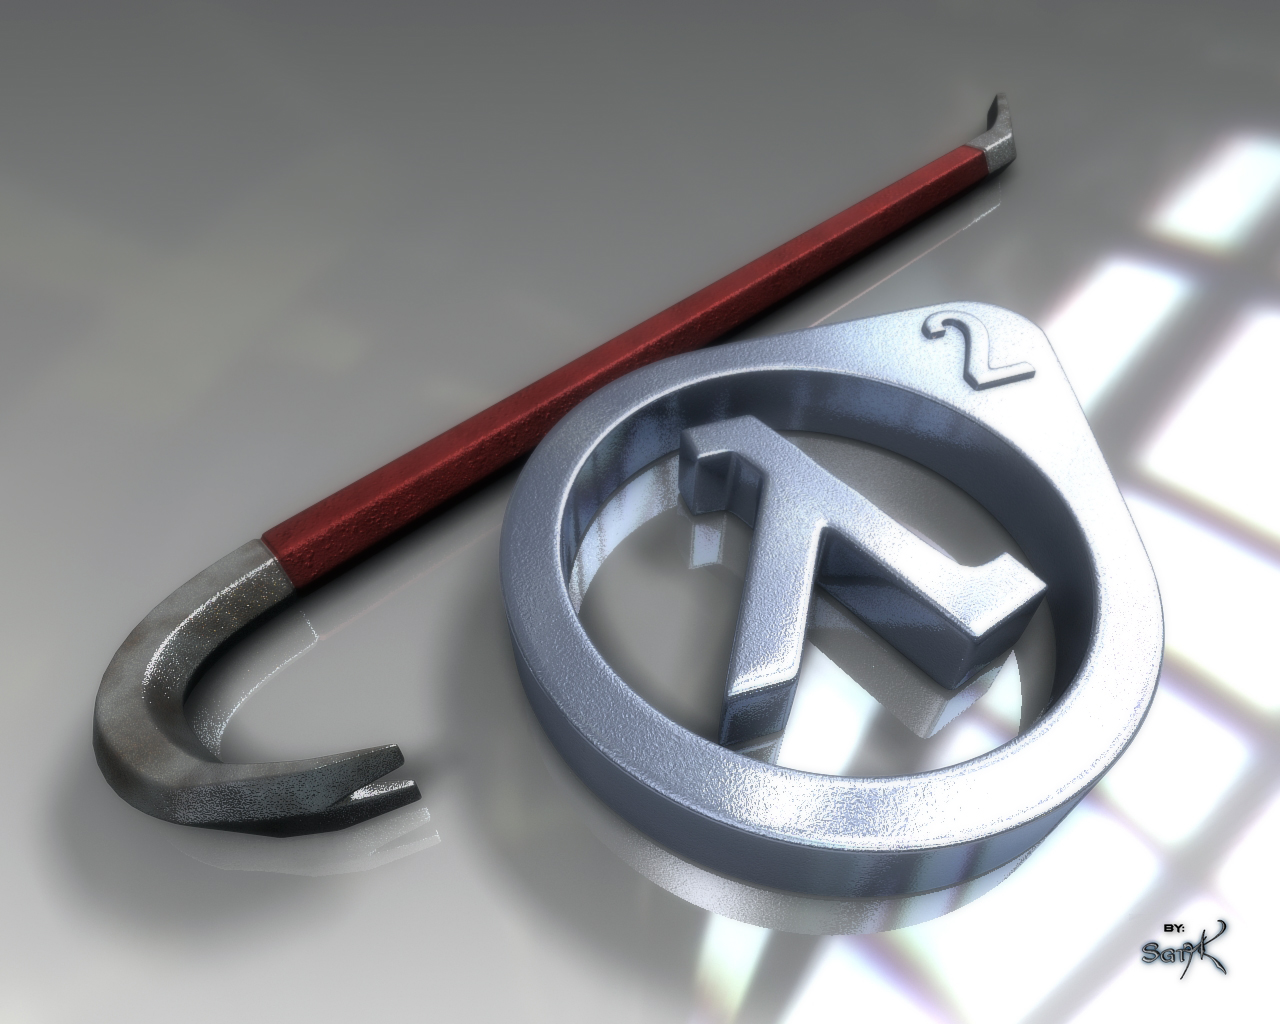 Half-Life 2 Crowbar and Lambda by SgtHK on DeviantArt